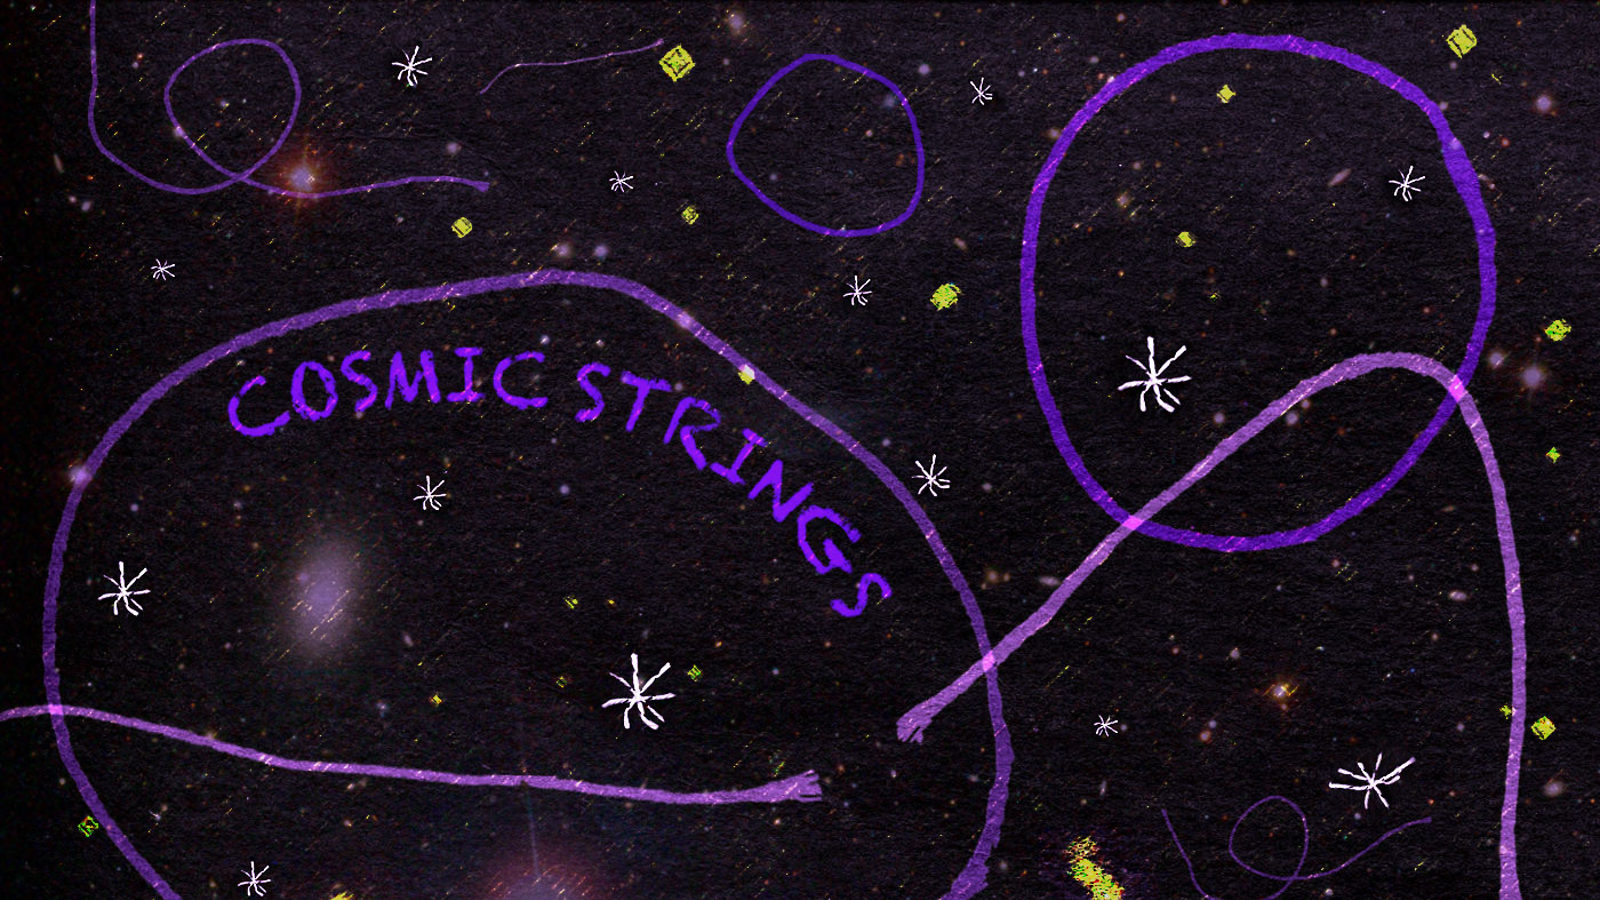 Image: Cosmic Strings